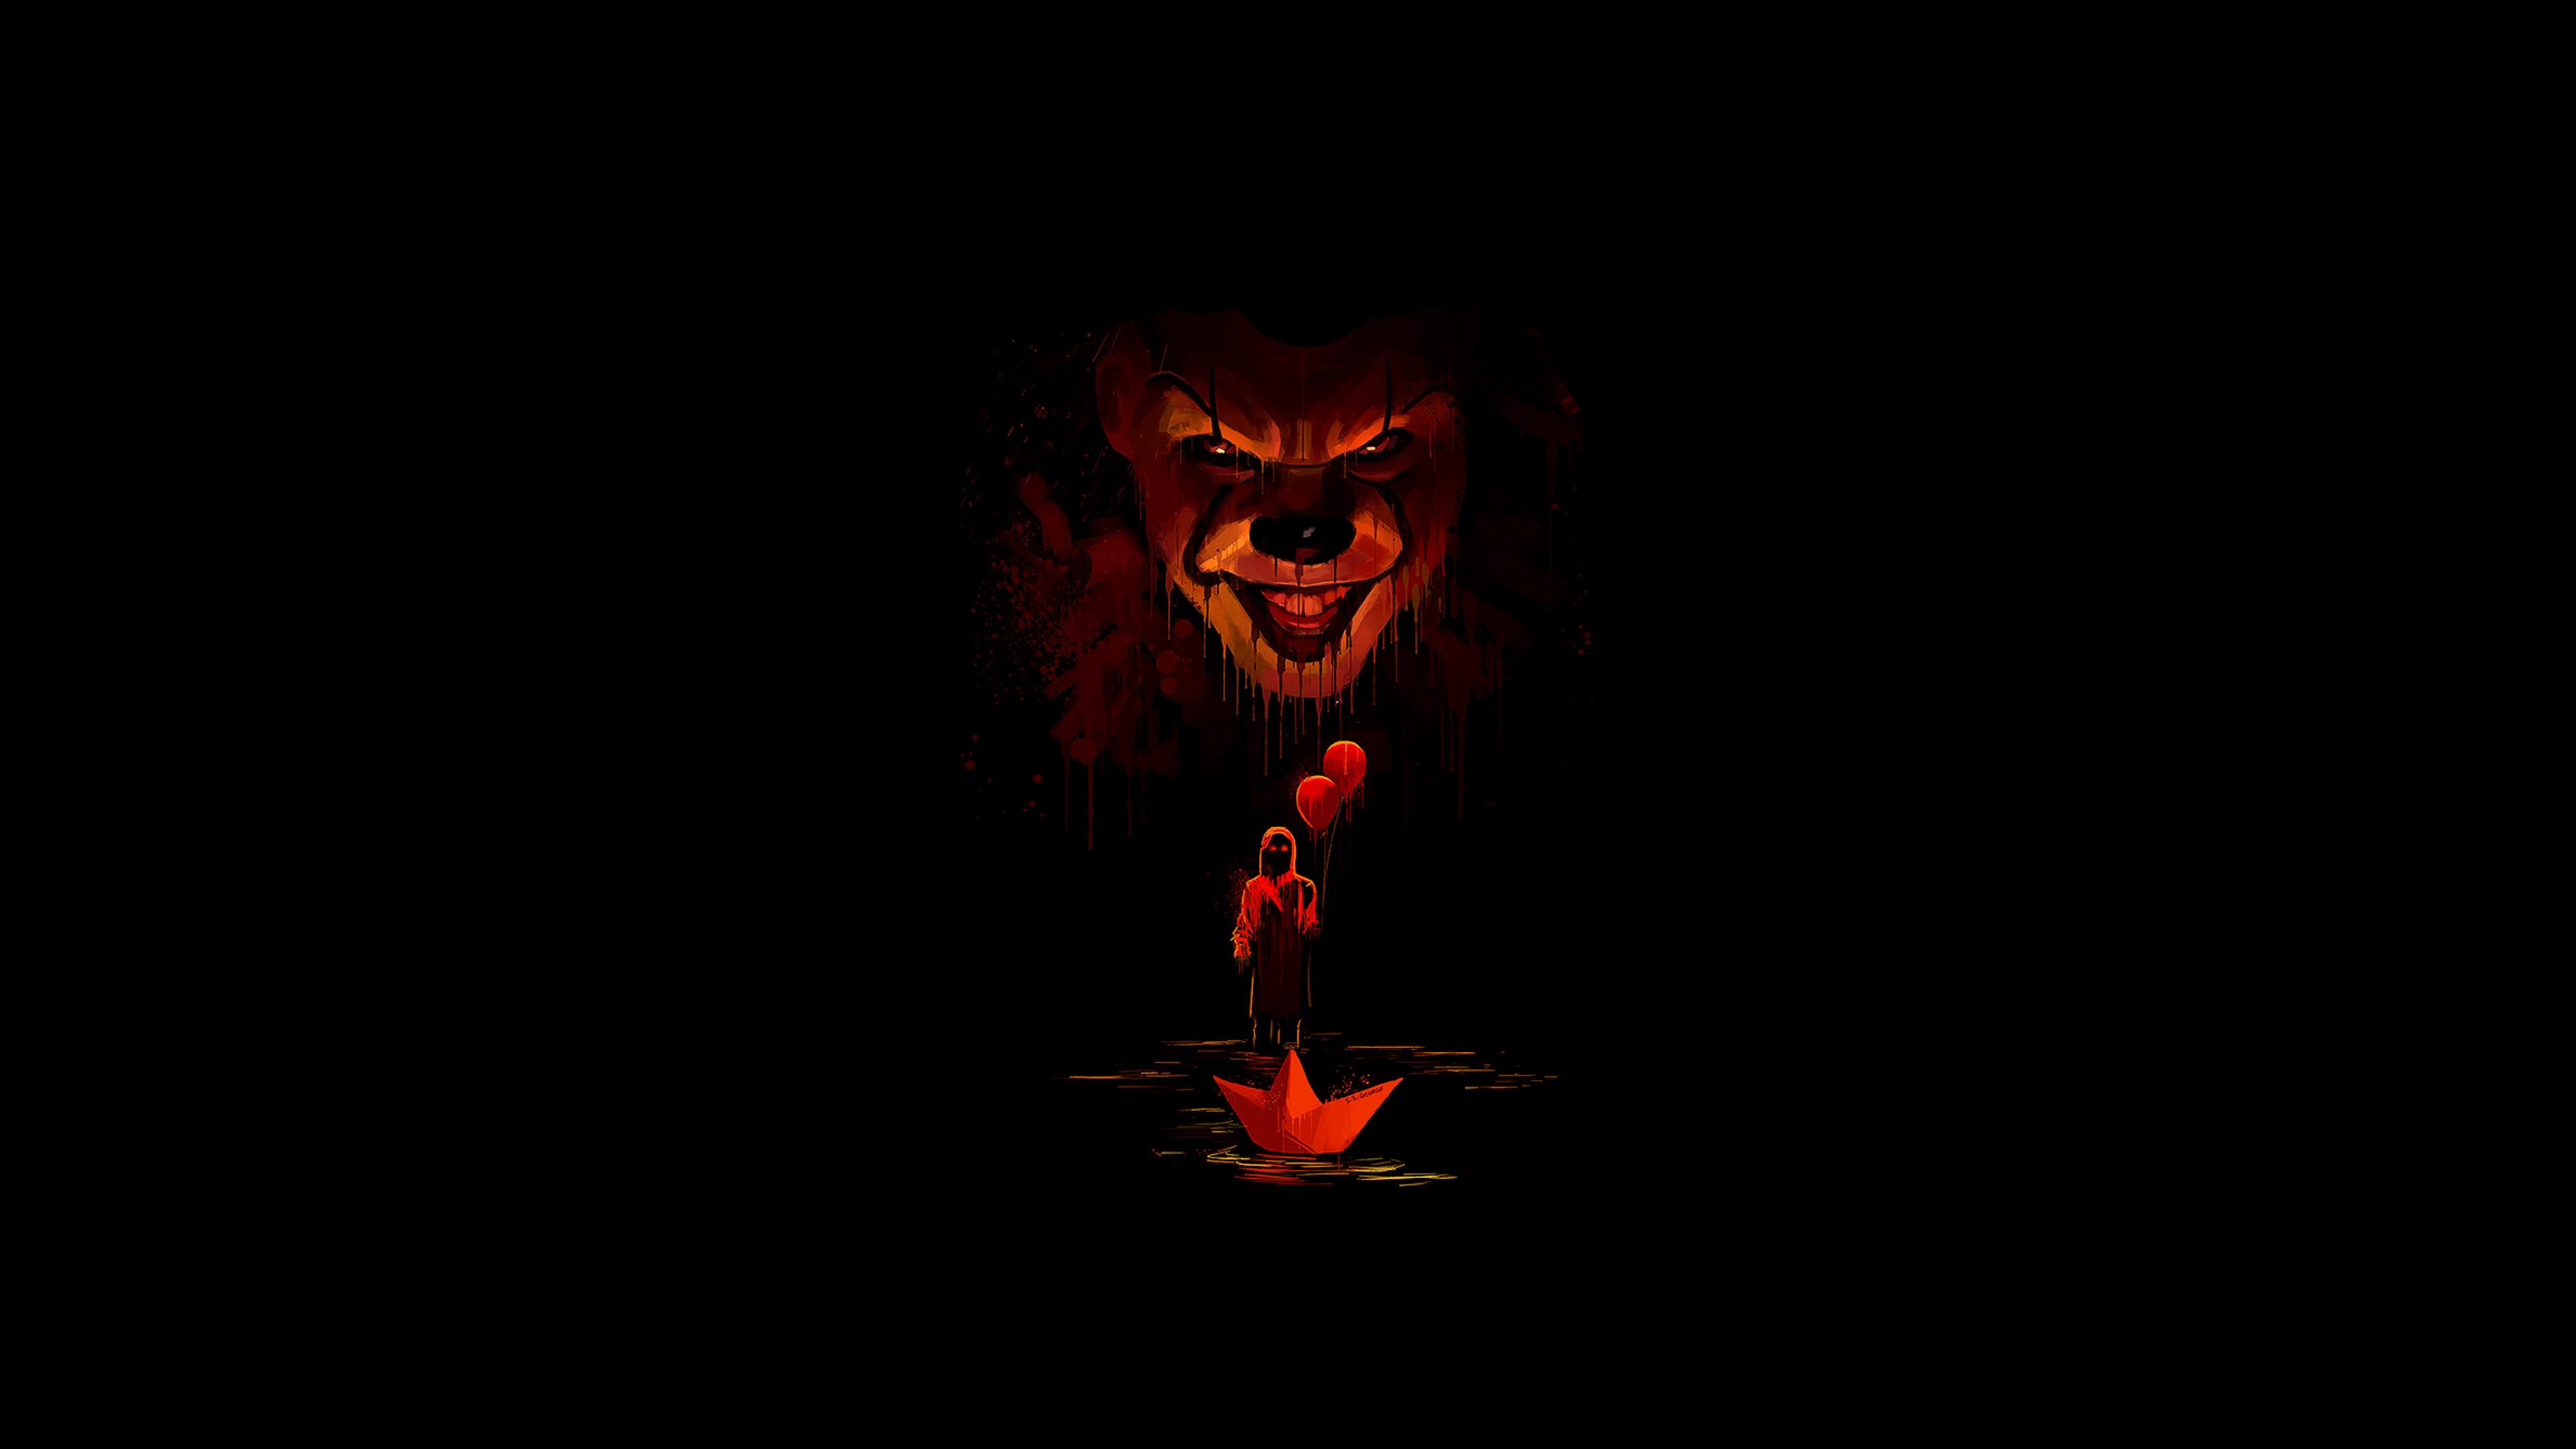 It Chapter Two Movie 2019 Art Wallpaper, HD Movies 4K Wallpapers